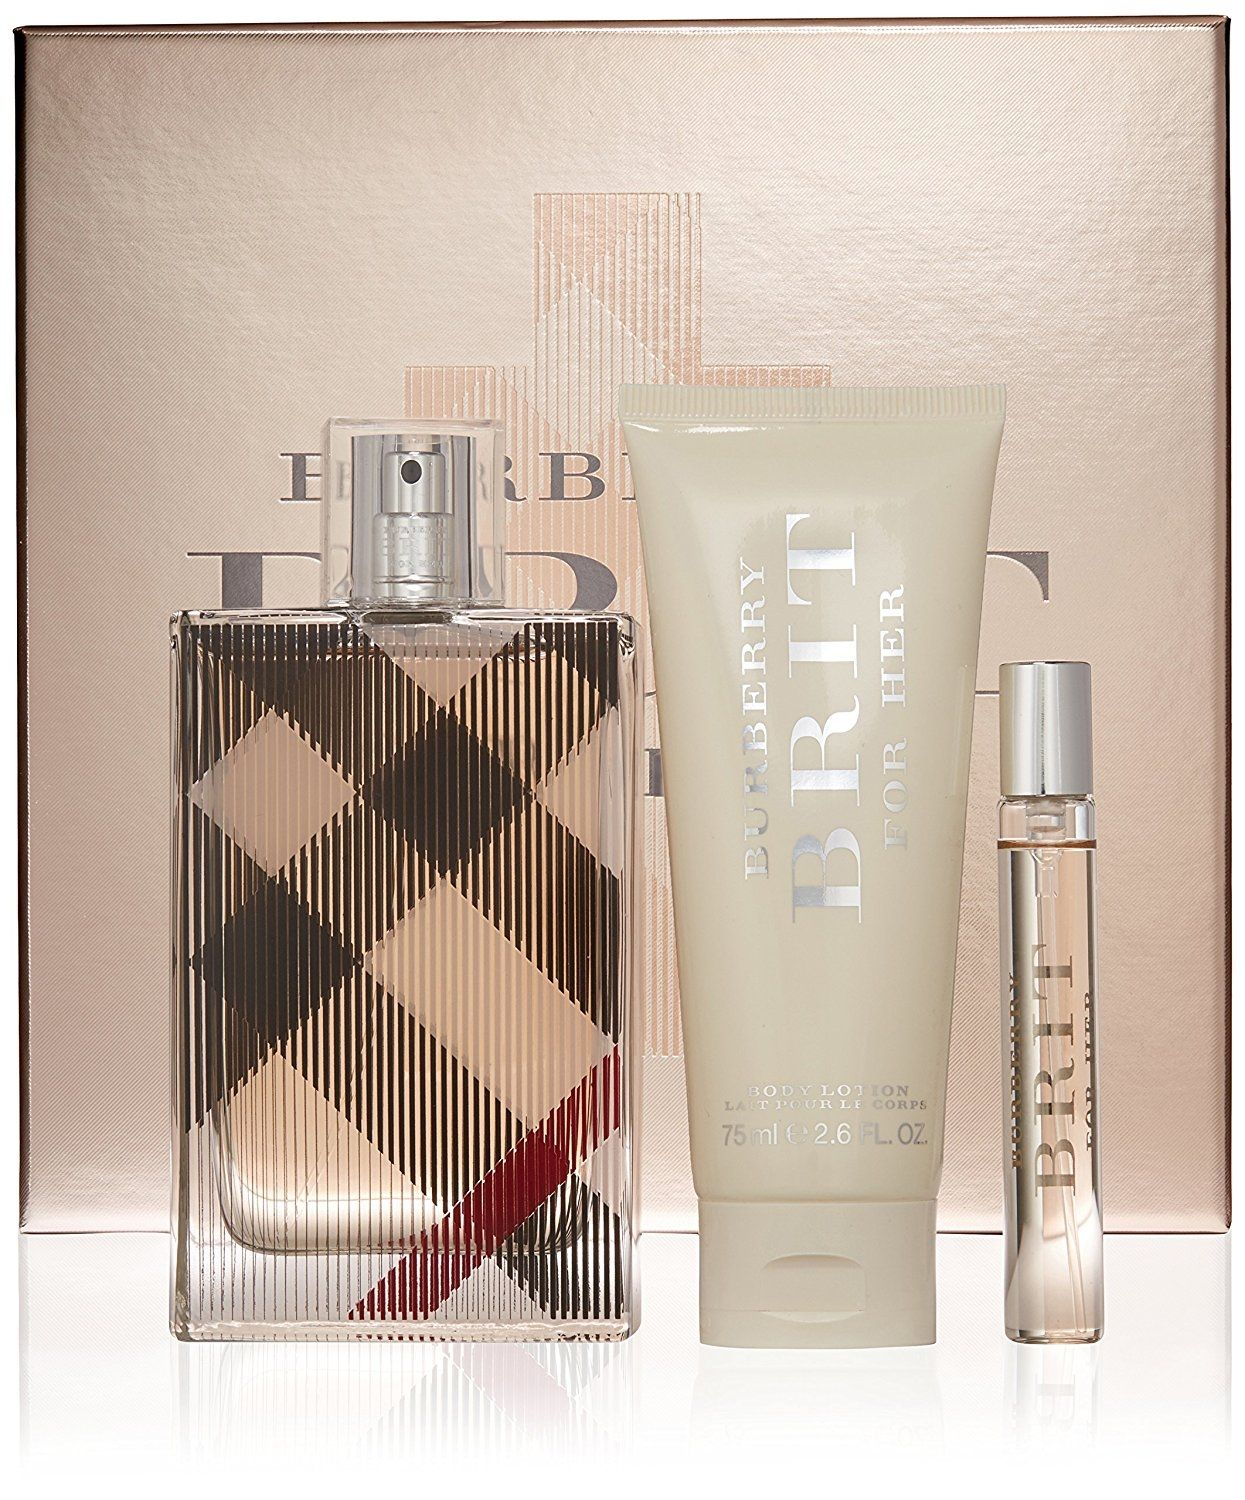 01d604393f2a Burberry Brit Gift Set – For Women – EDP – 100 ml + Body Lotion – 75 ...